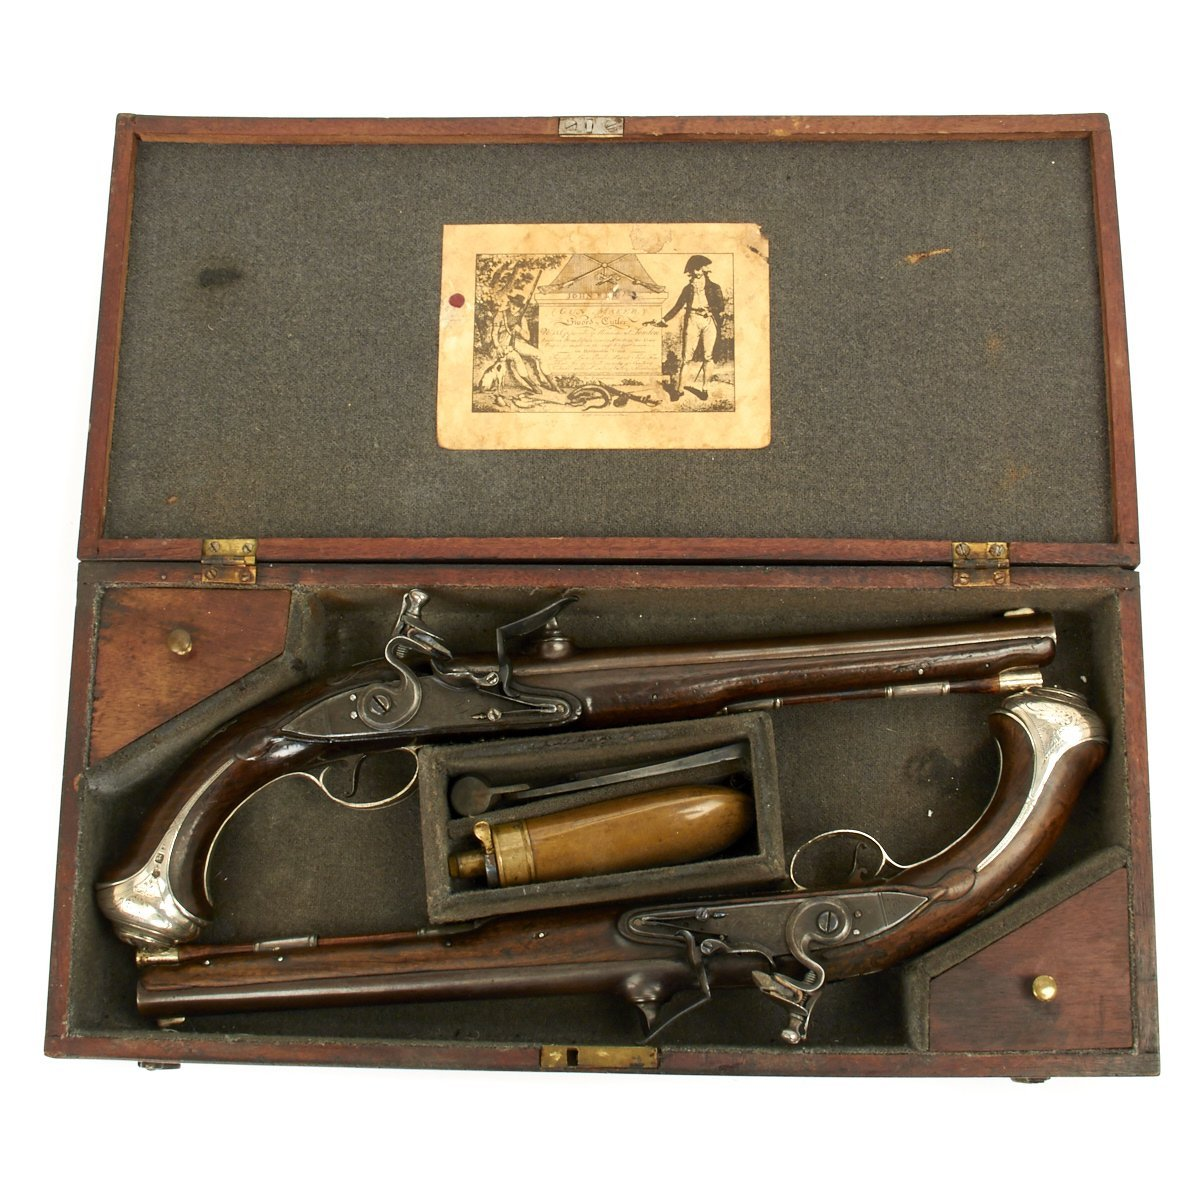 Original British 18th Century Breech Loading Pistols by